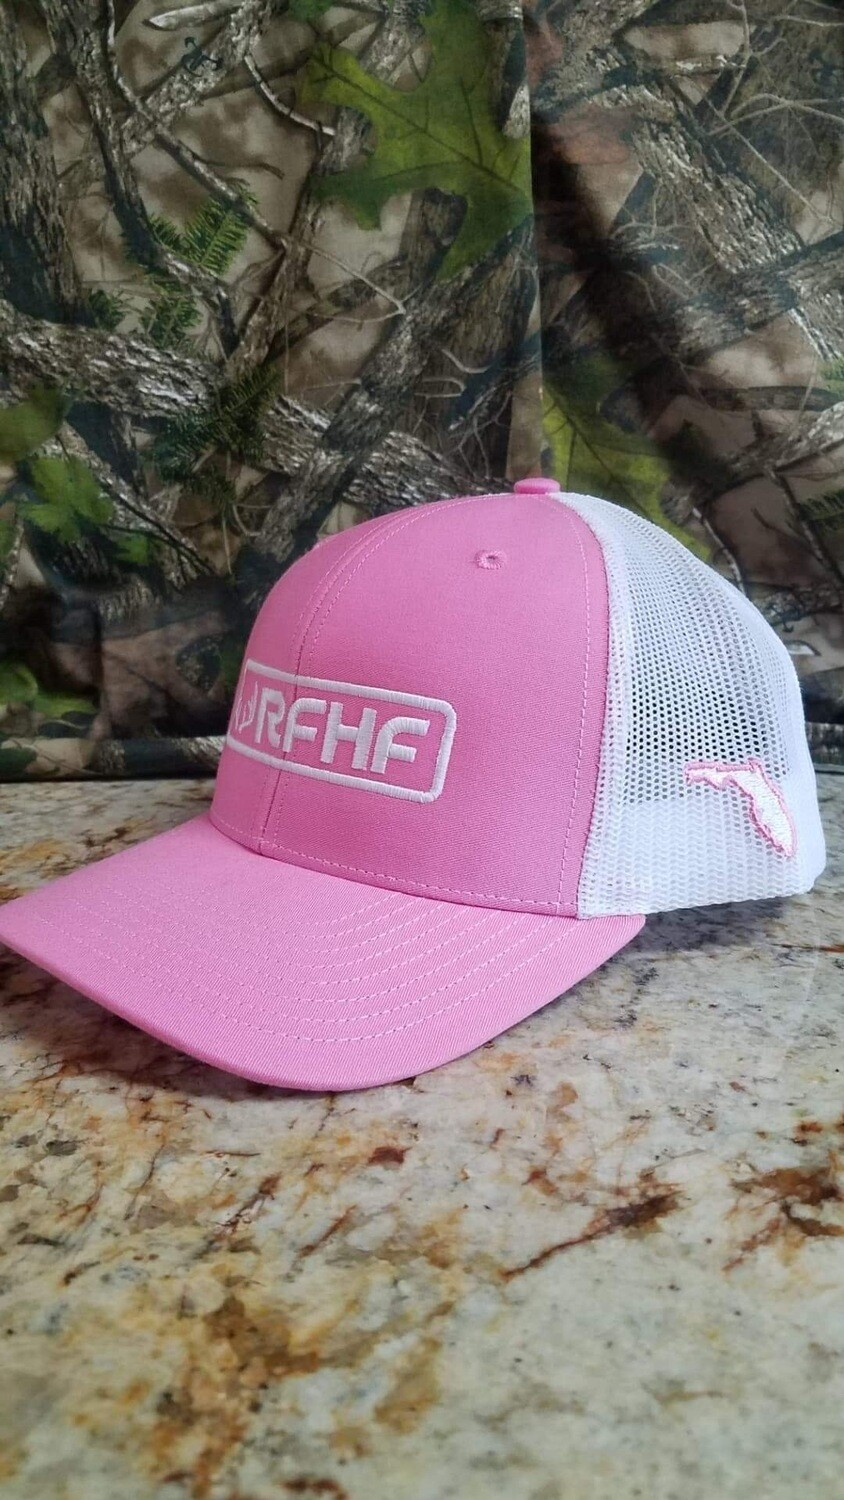 Pink and White Snapback